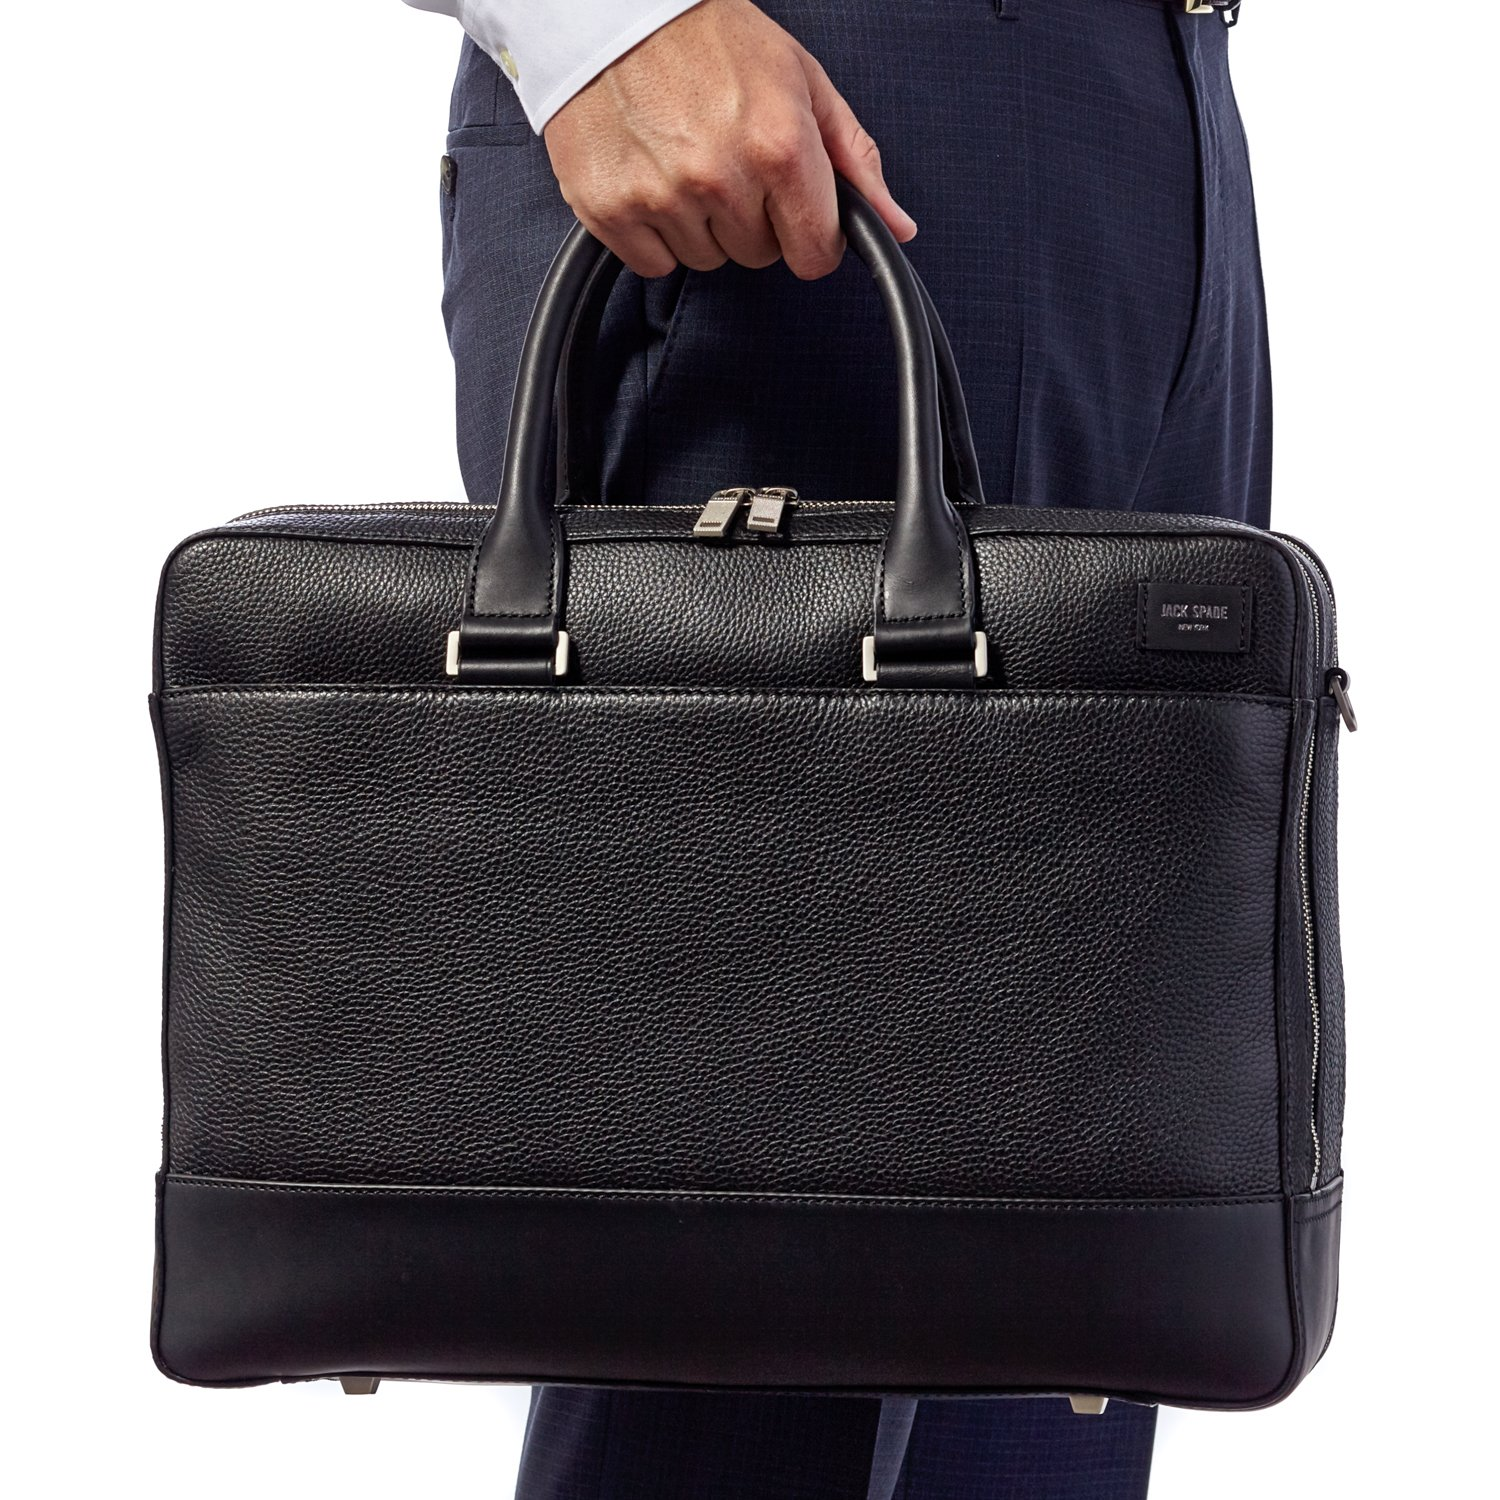 Jack Spade Pebble Leather Overnight Briefcase Travel Bag, Fits 15'' Laptop, Black by Jack Spade